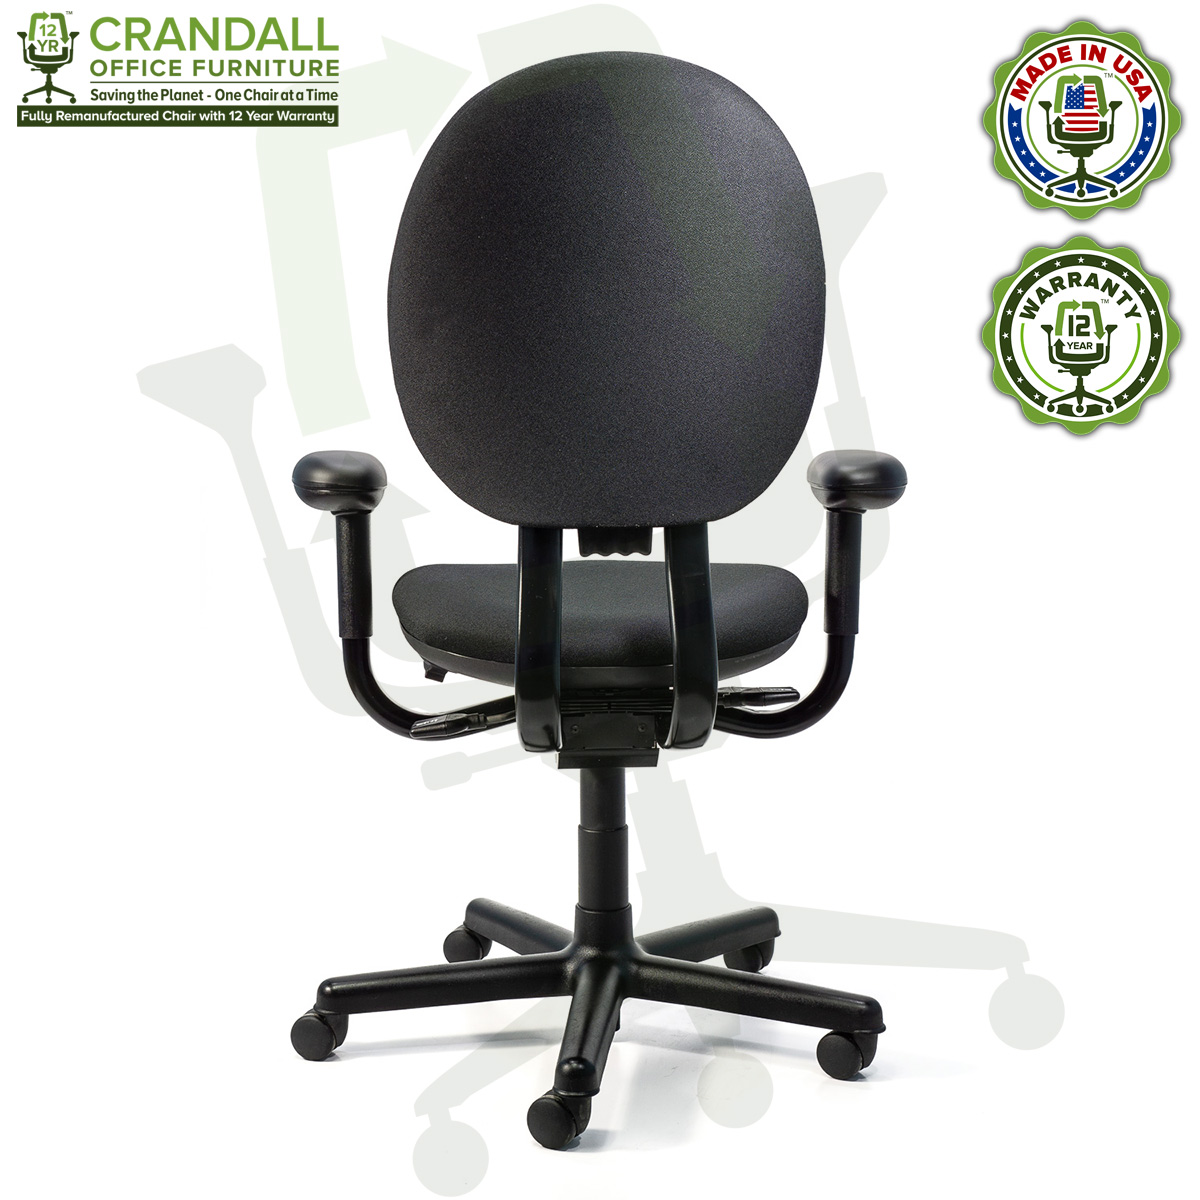 Crandall Office Furniture Remanufactured Steelcase Criterion Chair with 12 Year Warranty - 05